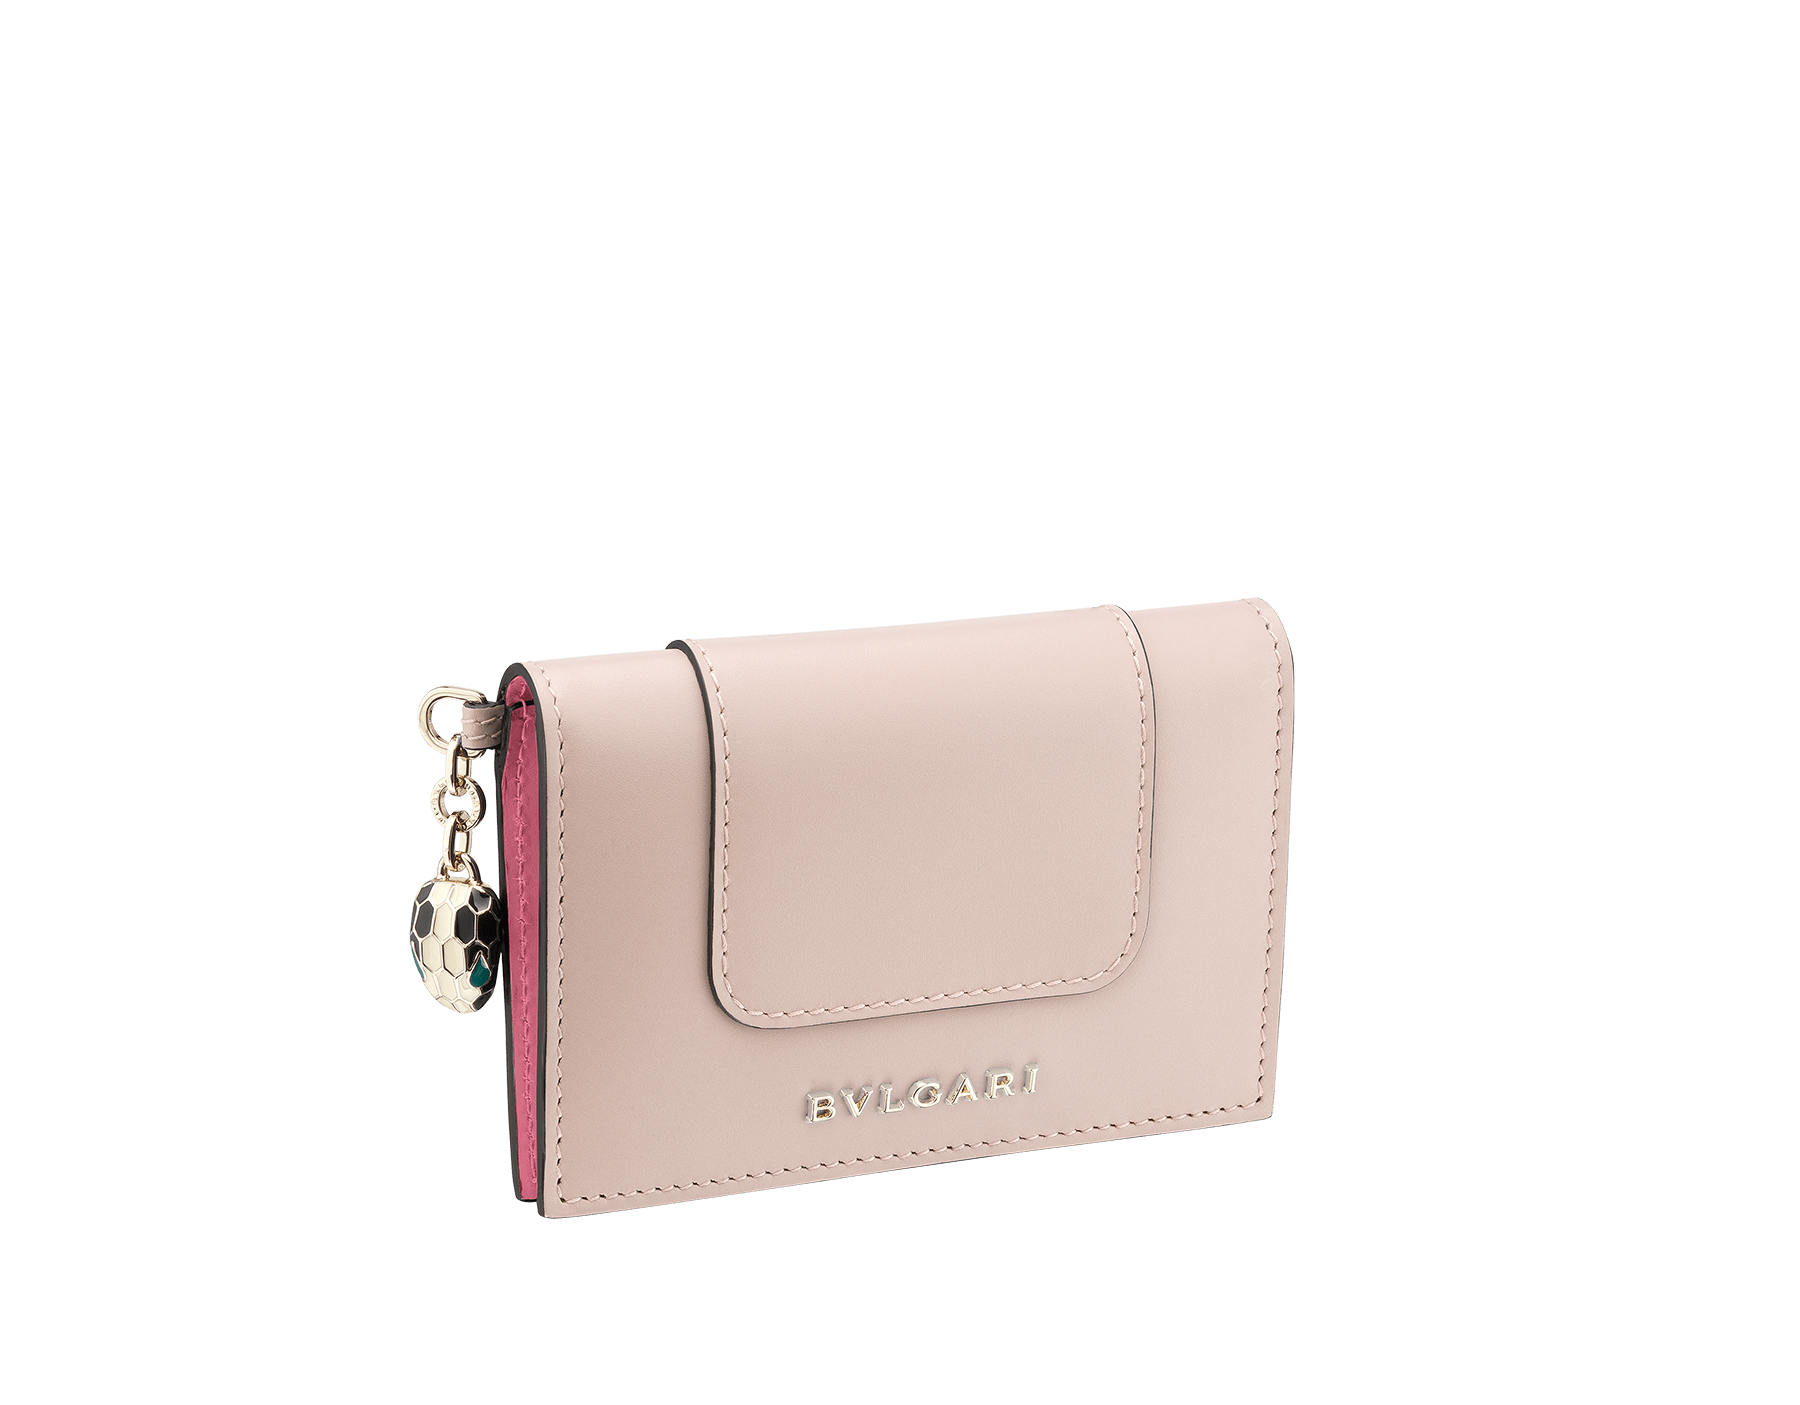 Serpenti Forever folded credit card holder in crystal rose calf leather. Iconic snakehead charm in black and white enamel, with green malachite enamel eyes. 287896 image 1